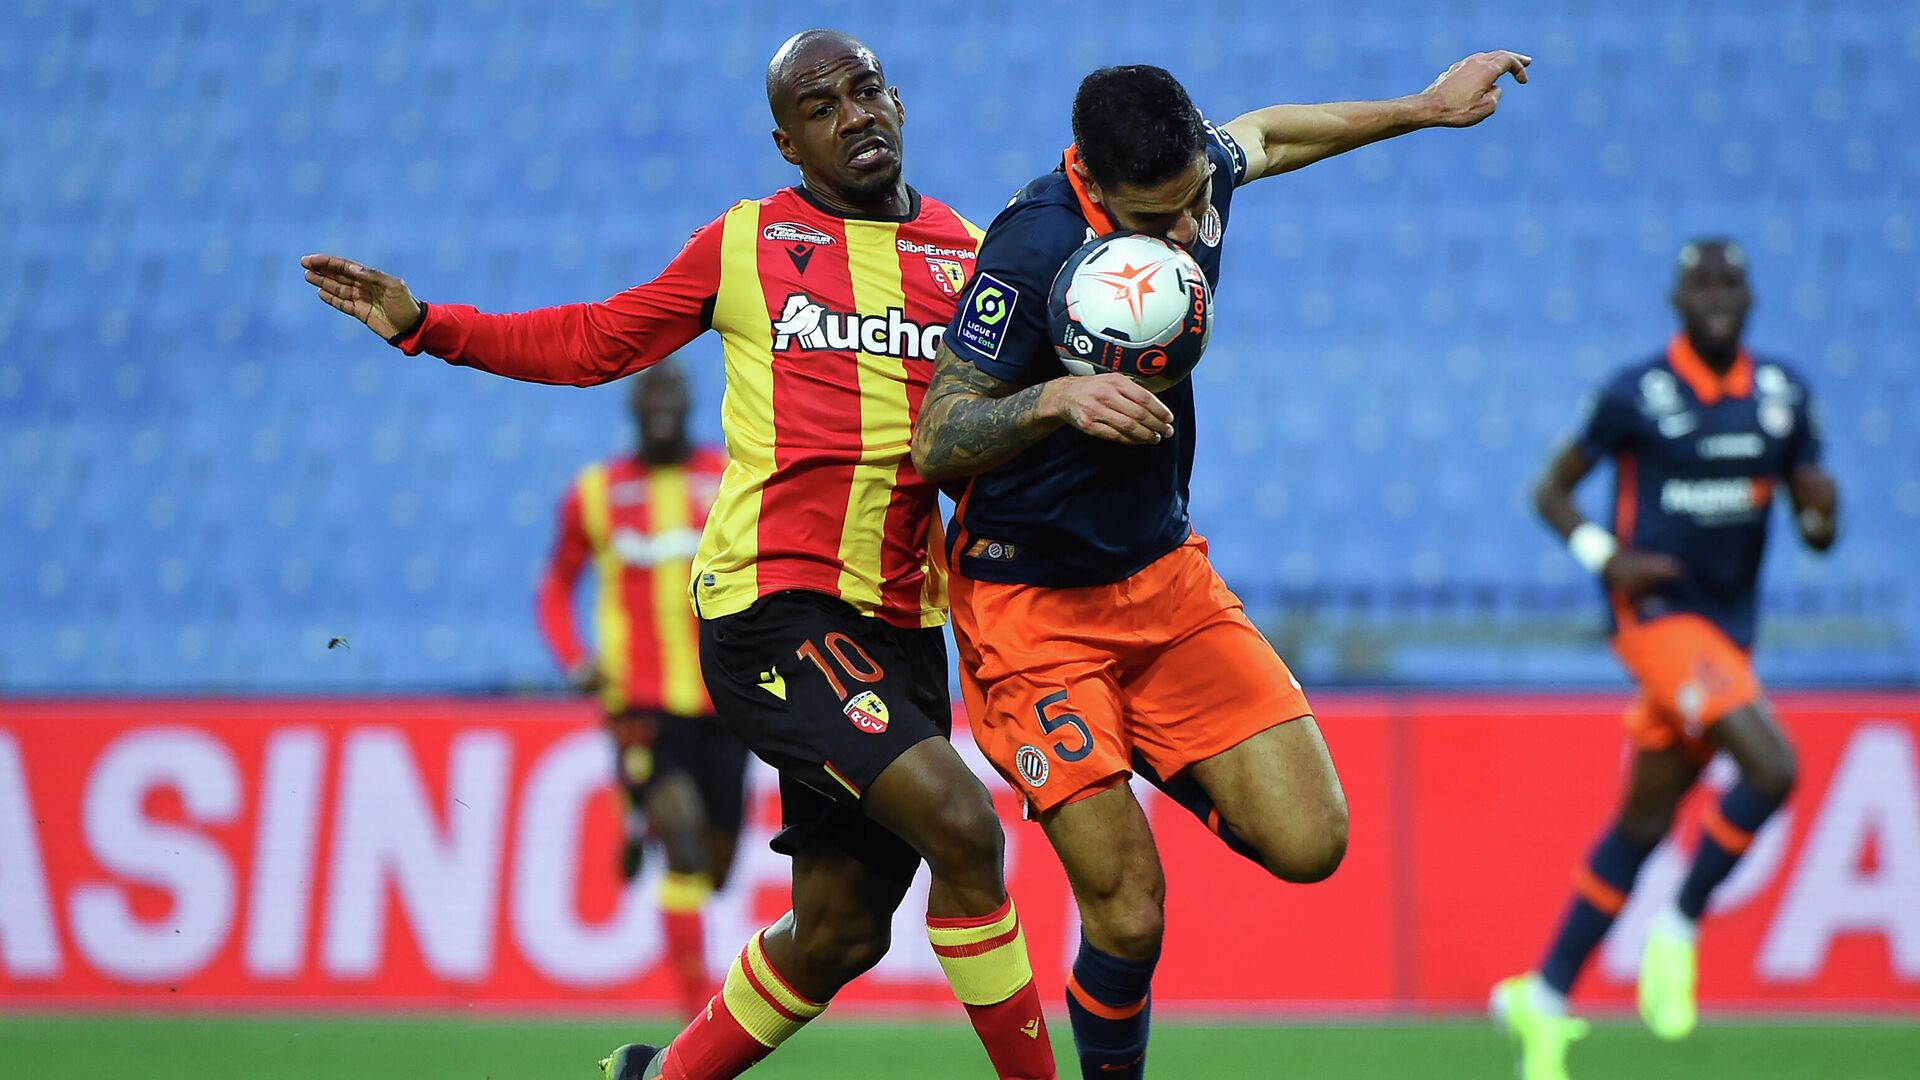 Montpellier's Portuguese defender Pedro Mendes (R) fights for the ball with Lens' Congolese midfielder Gael Kakuta (L)  during the French L1 football match between Montpellier and Lens at the Mosson stadium in Montpellier, Southern France on January 30, 2021. (Photo by Sylvain THOMAS / AFP) - РИА Новости, 1920, 30.01.2021